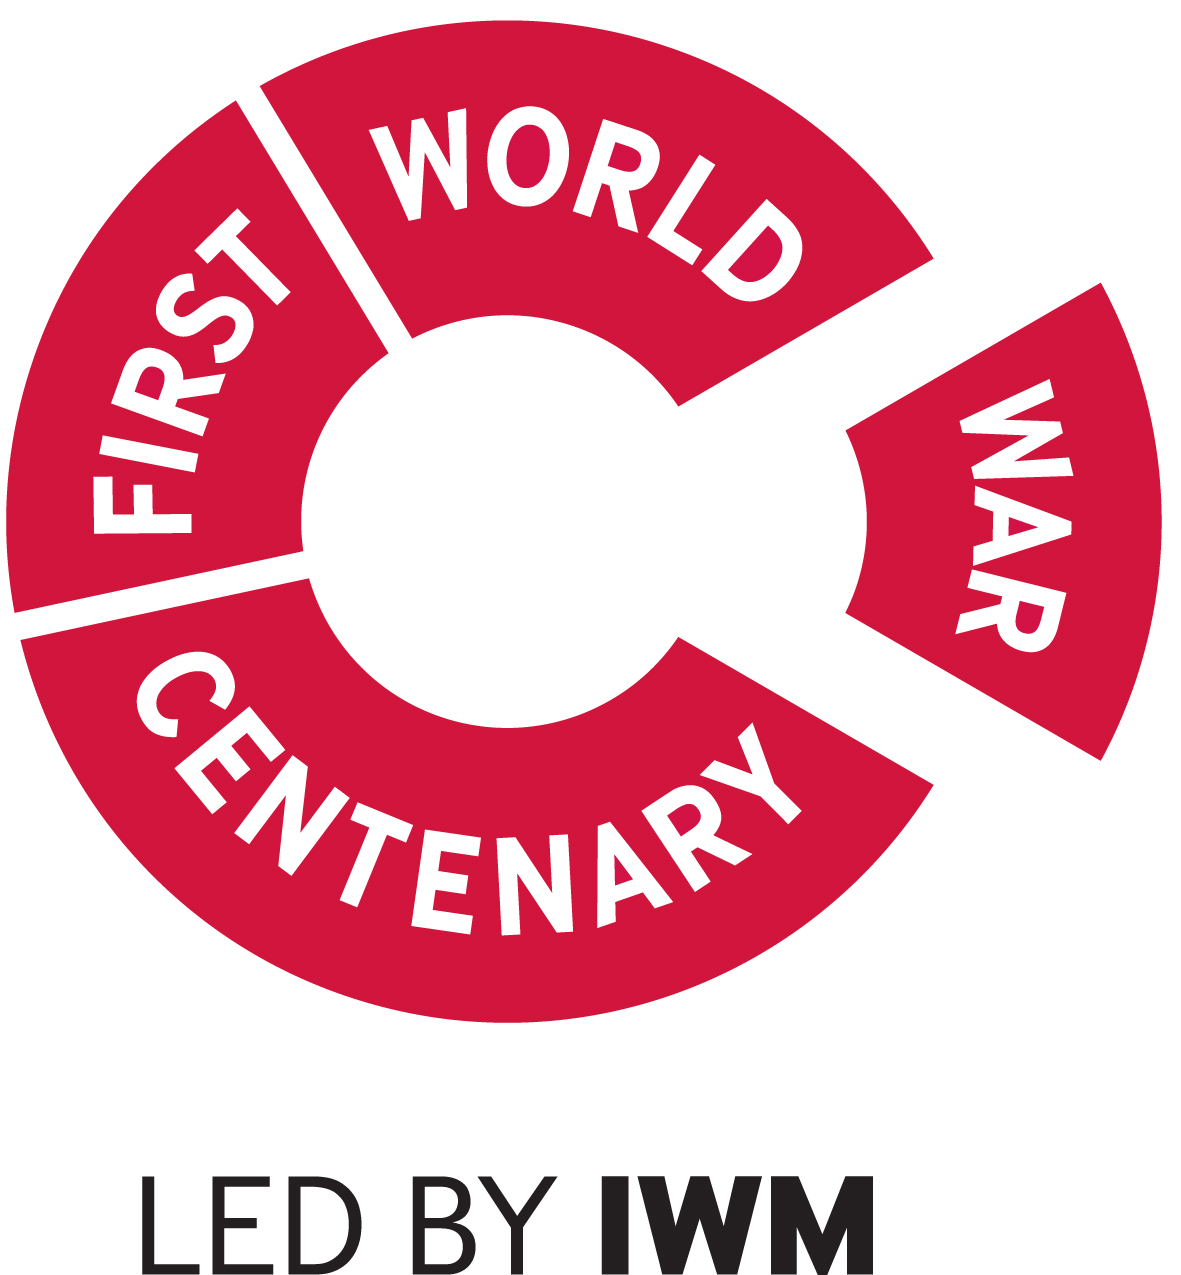 FWW Centenary Led By IWM Red rgb